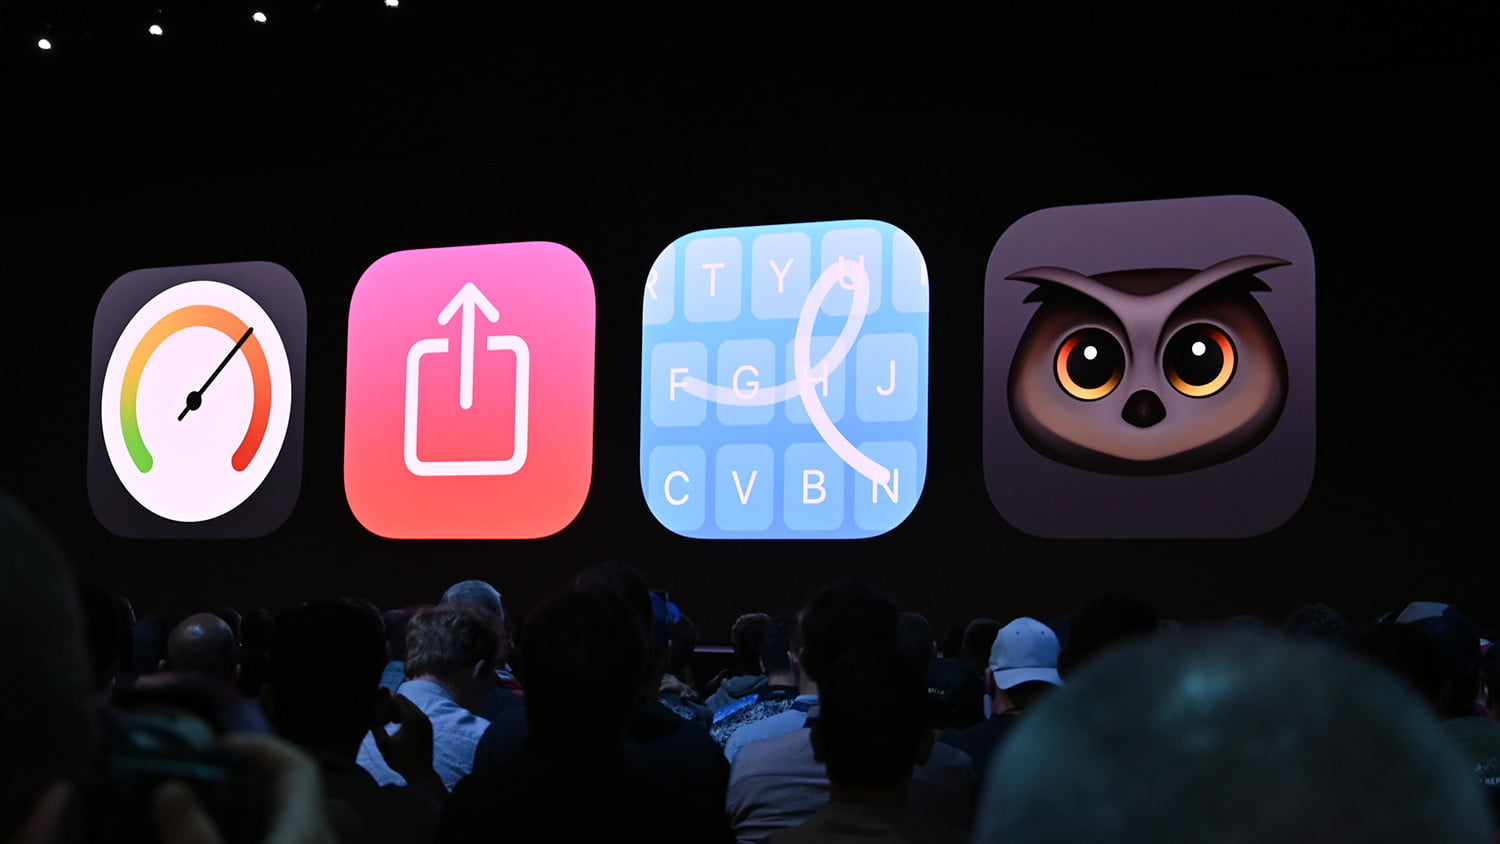 WWDC 2019: From iOS 13 to a Mac Pro, Here's What to Expect